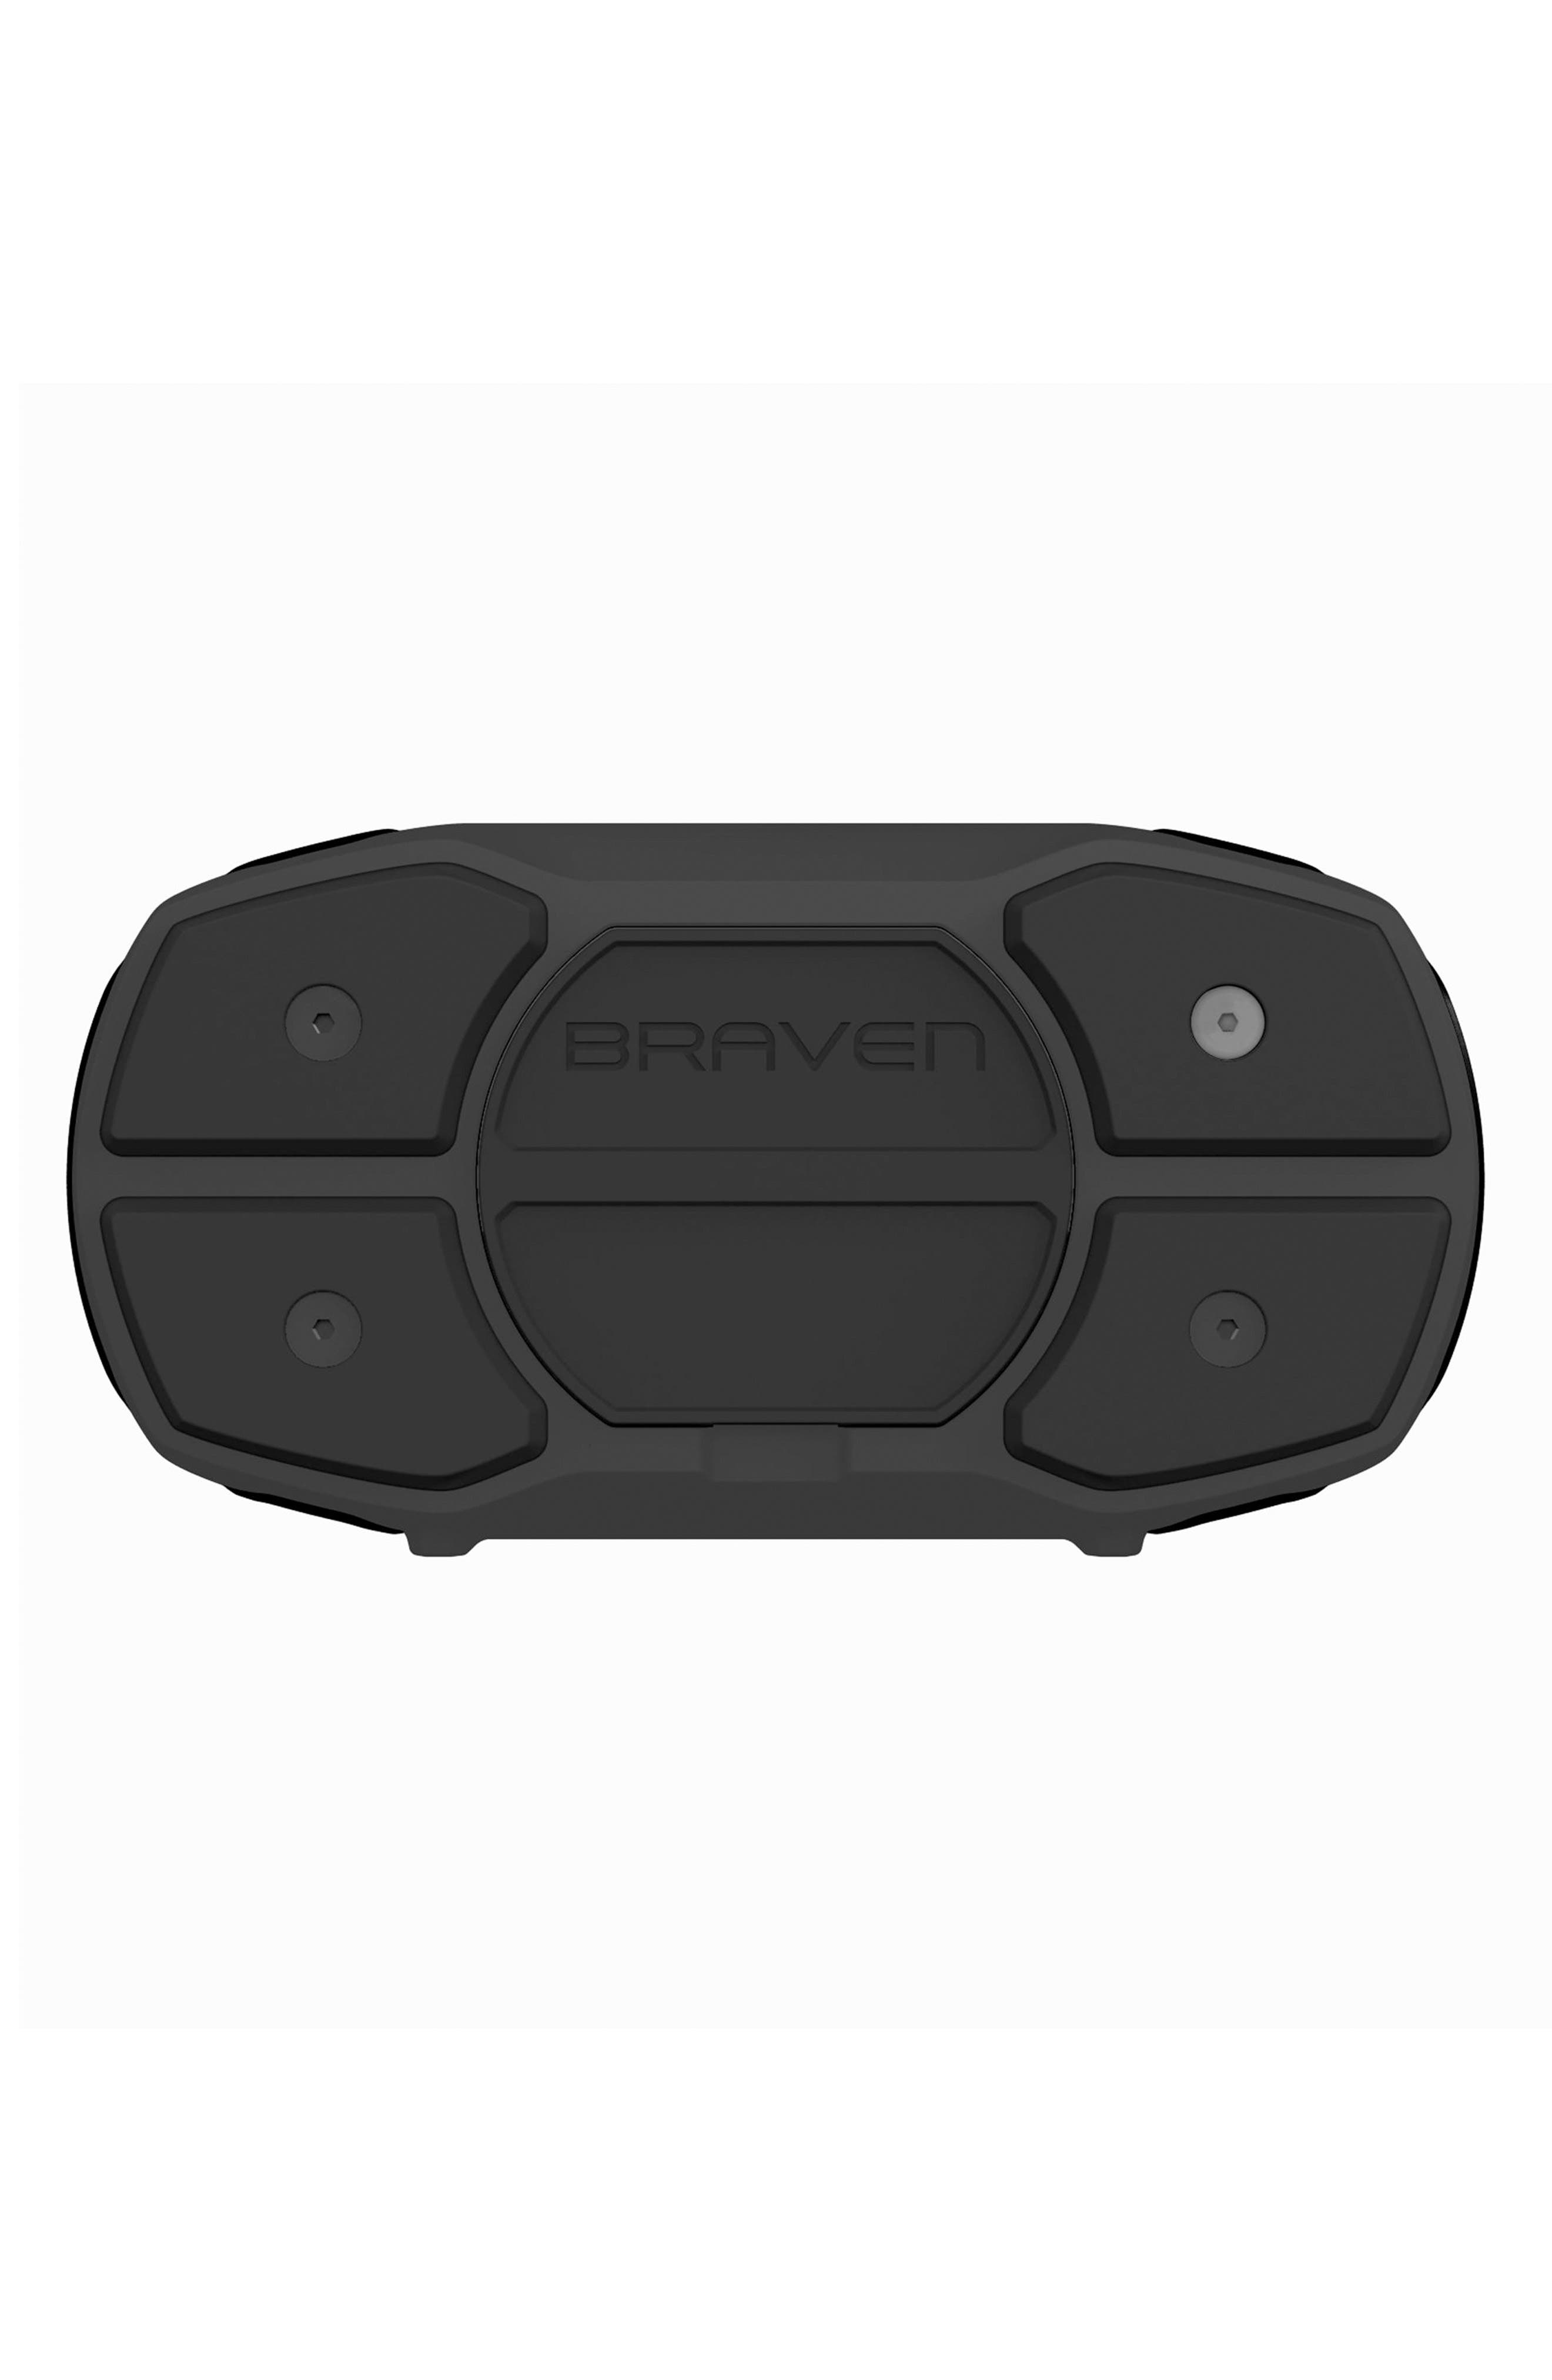 Ready Elite Bluetooth<sup>®</sup> Speaker,                             Main thumbnail 1, color,                             Black/ Titanium